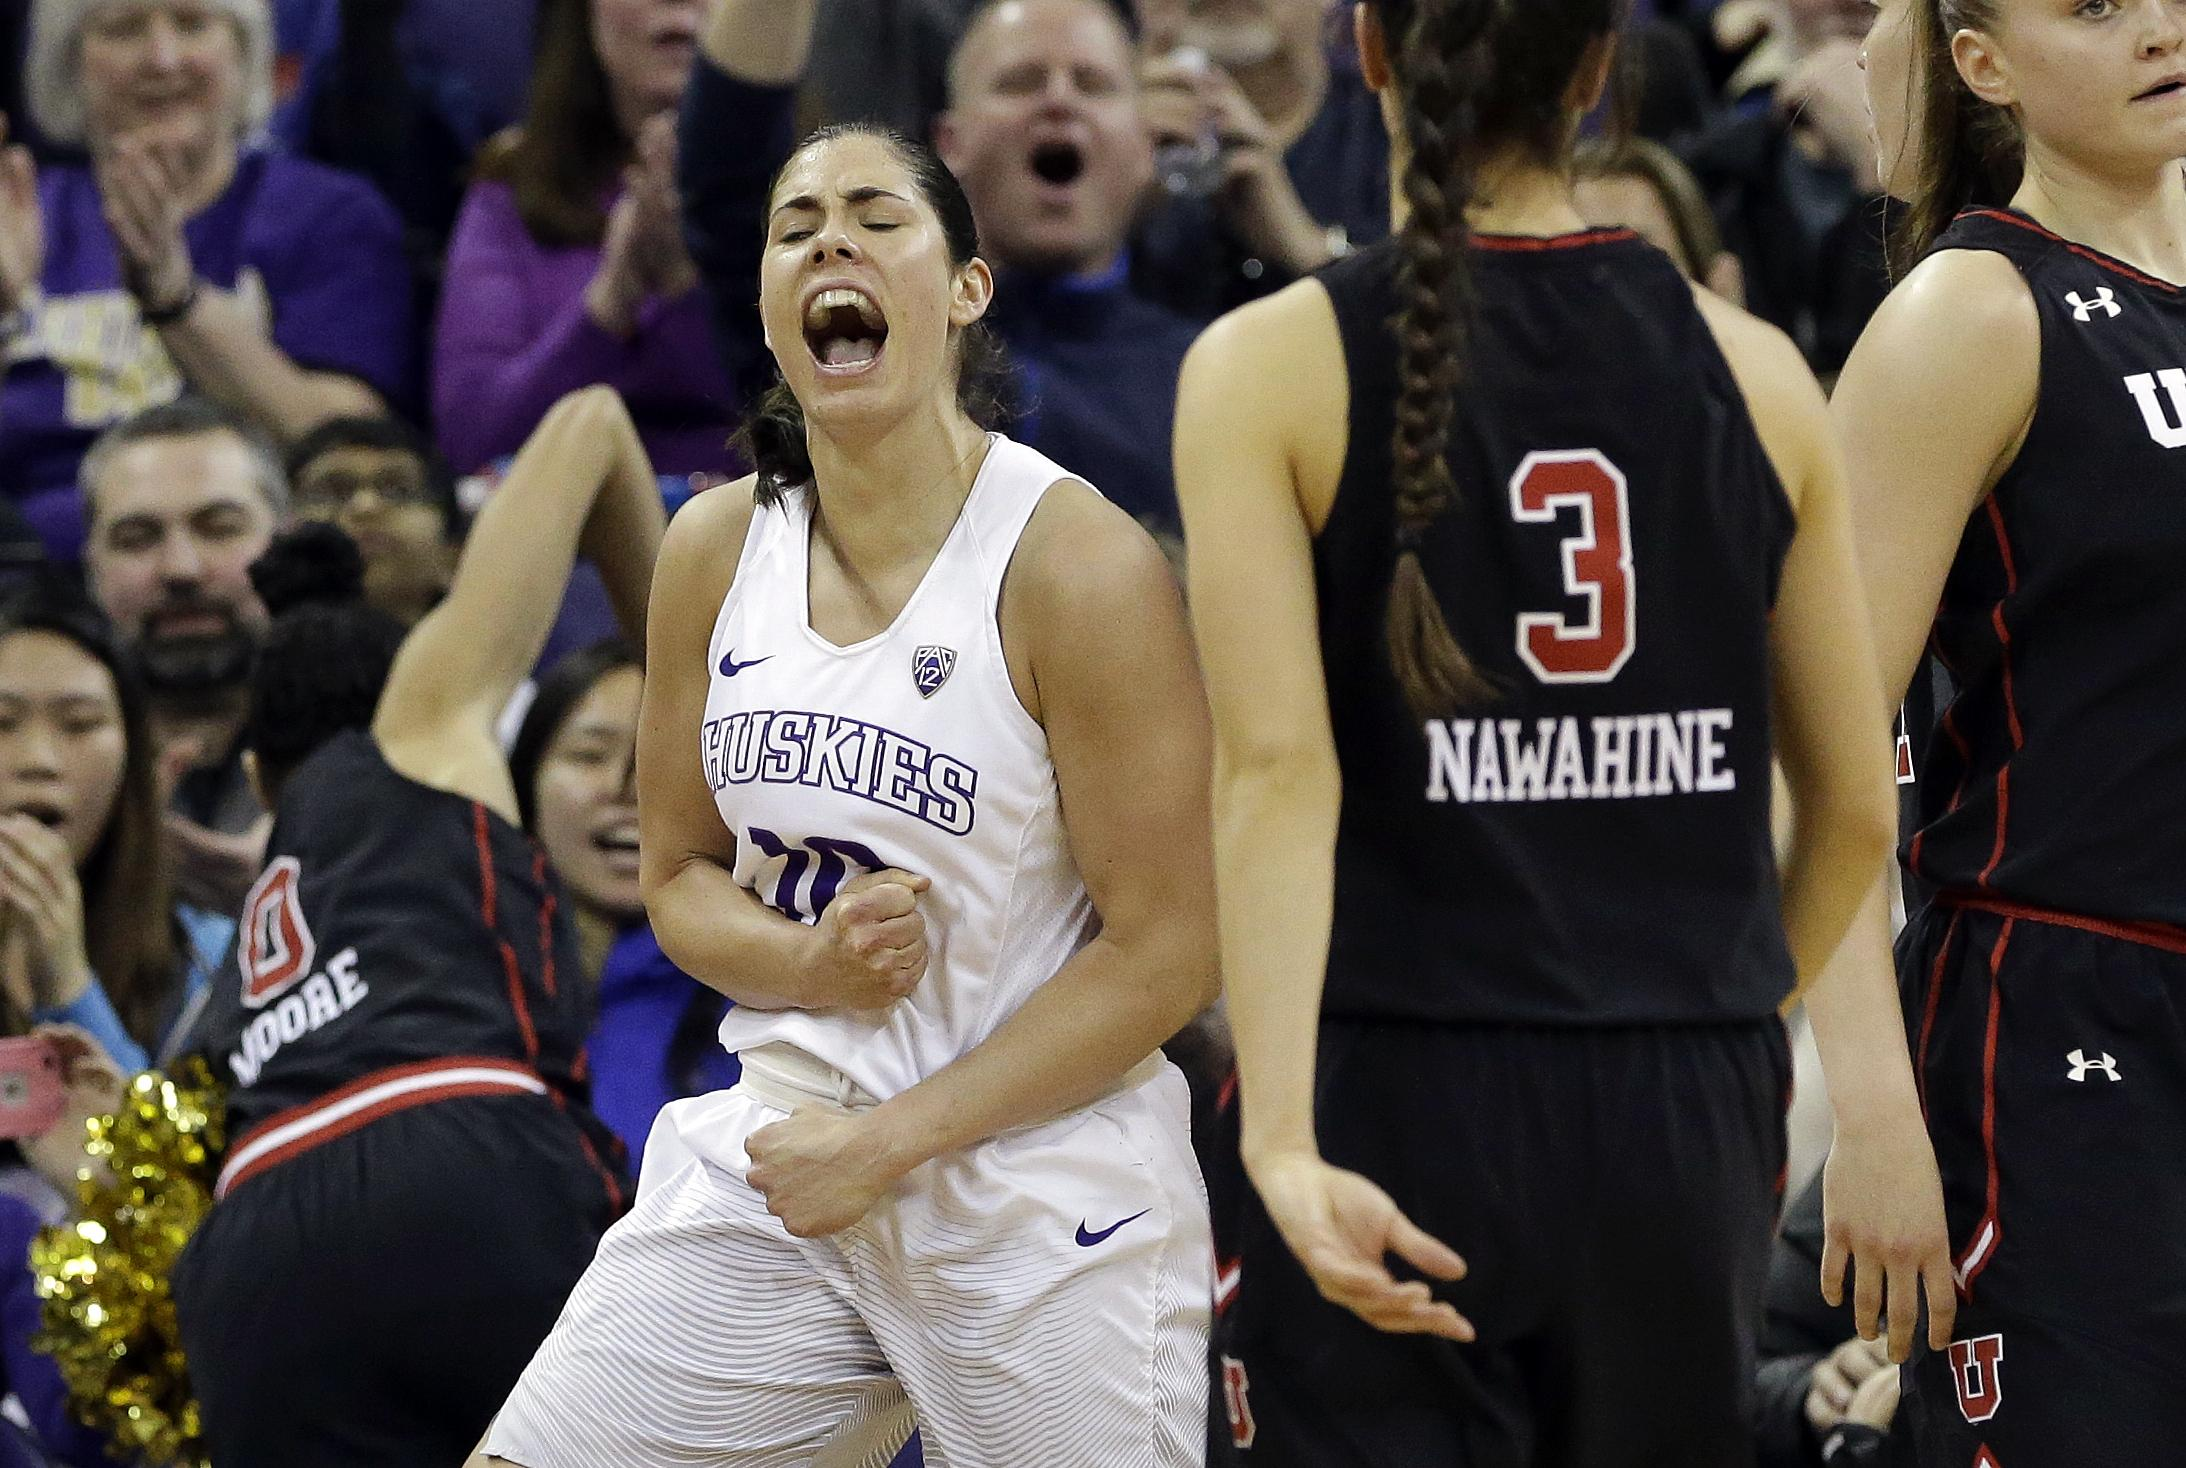 Washington s Kelsey Plum reacts after scoring against Utah in the second  half of an NCAA college 75a17e08b